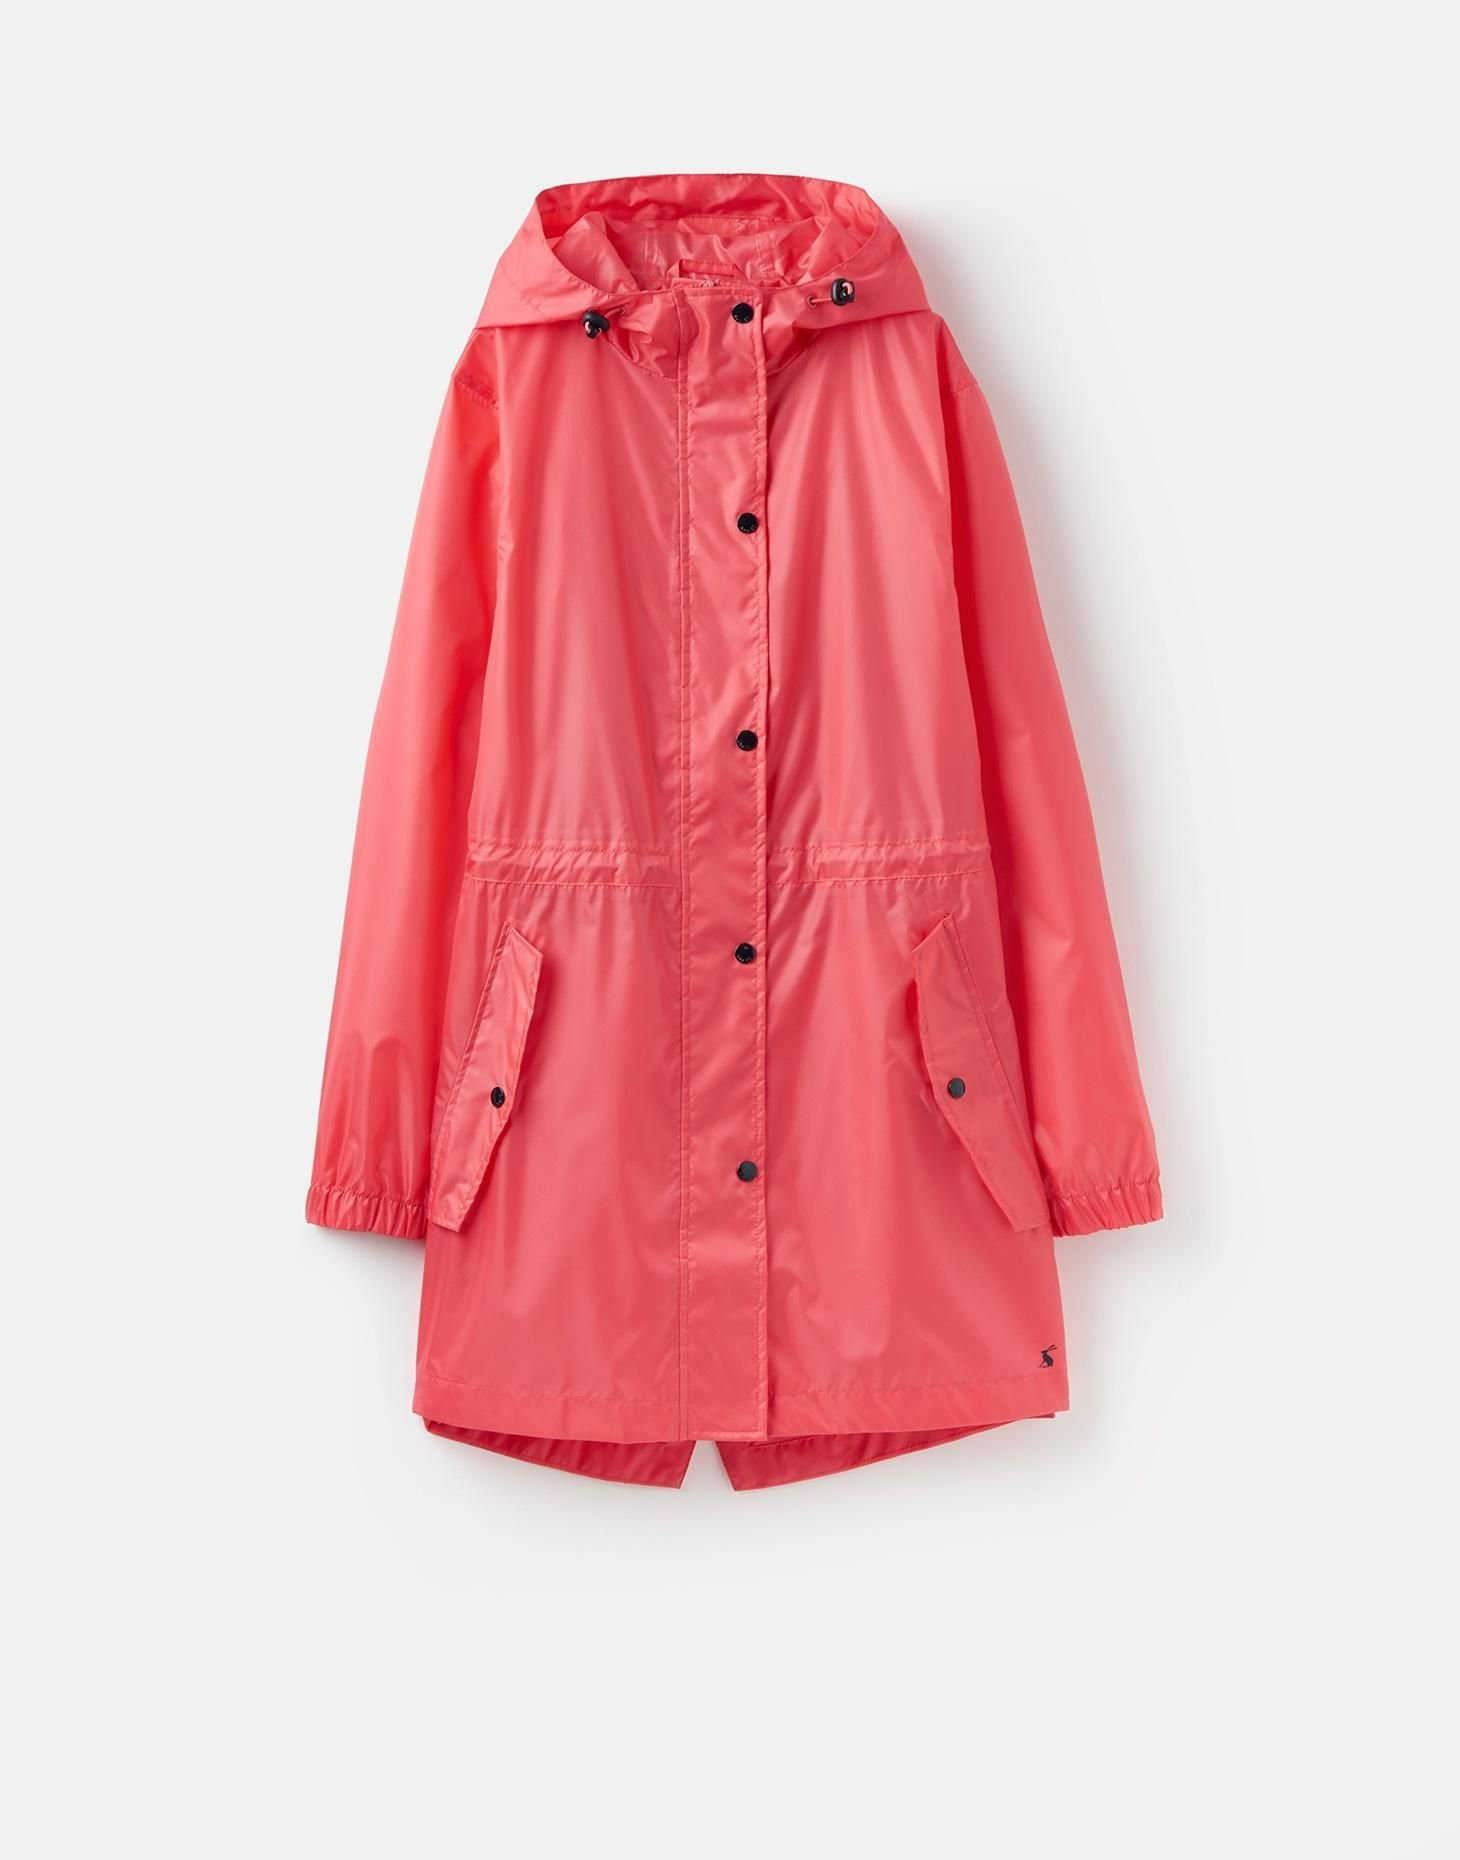 Joules Outerwear Women's Golightly Athletic Soft Shell Jackets, Size 6, Red Sky